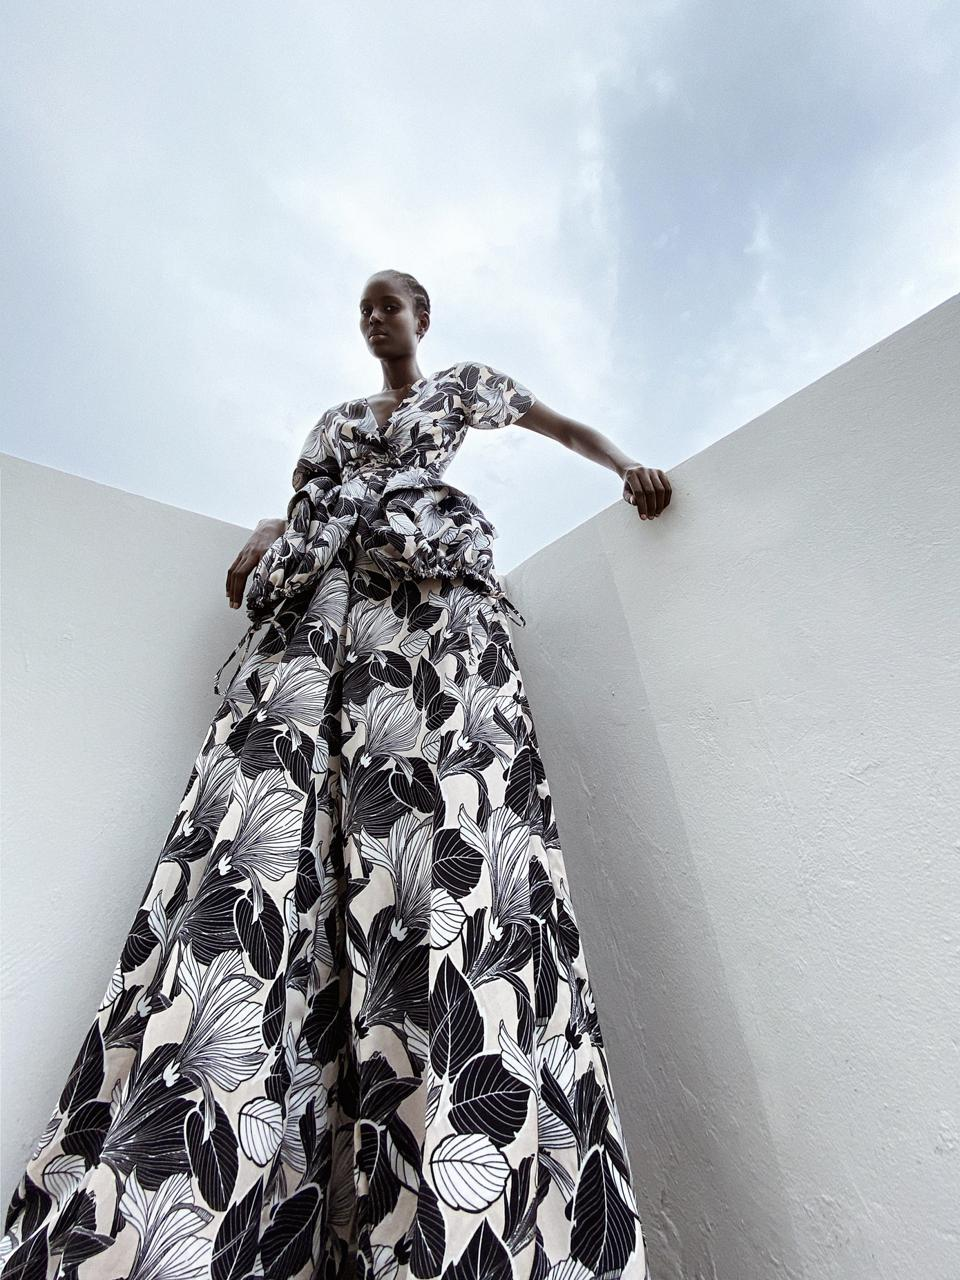 Black and white Folo wide leg trousers and top by TONGORO for INDUSTRIE AFRICA